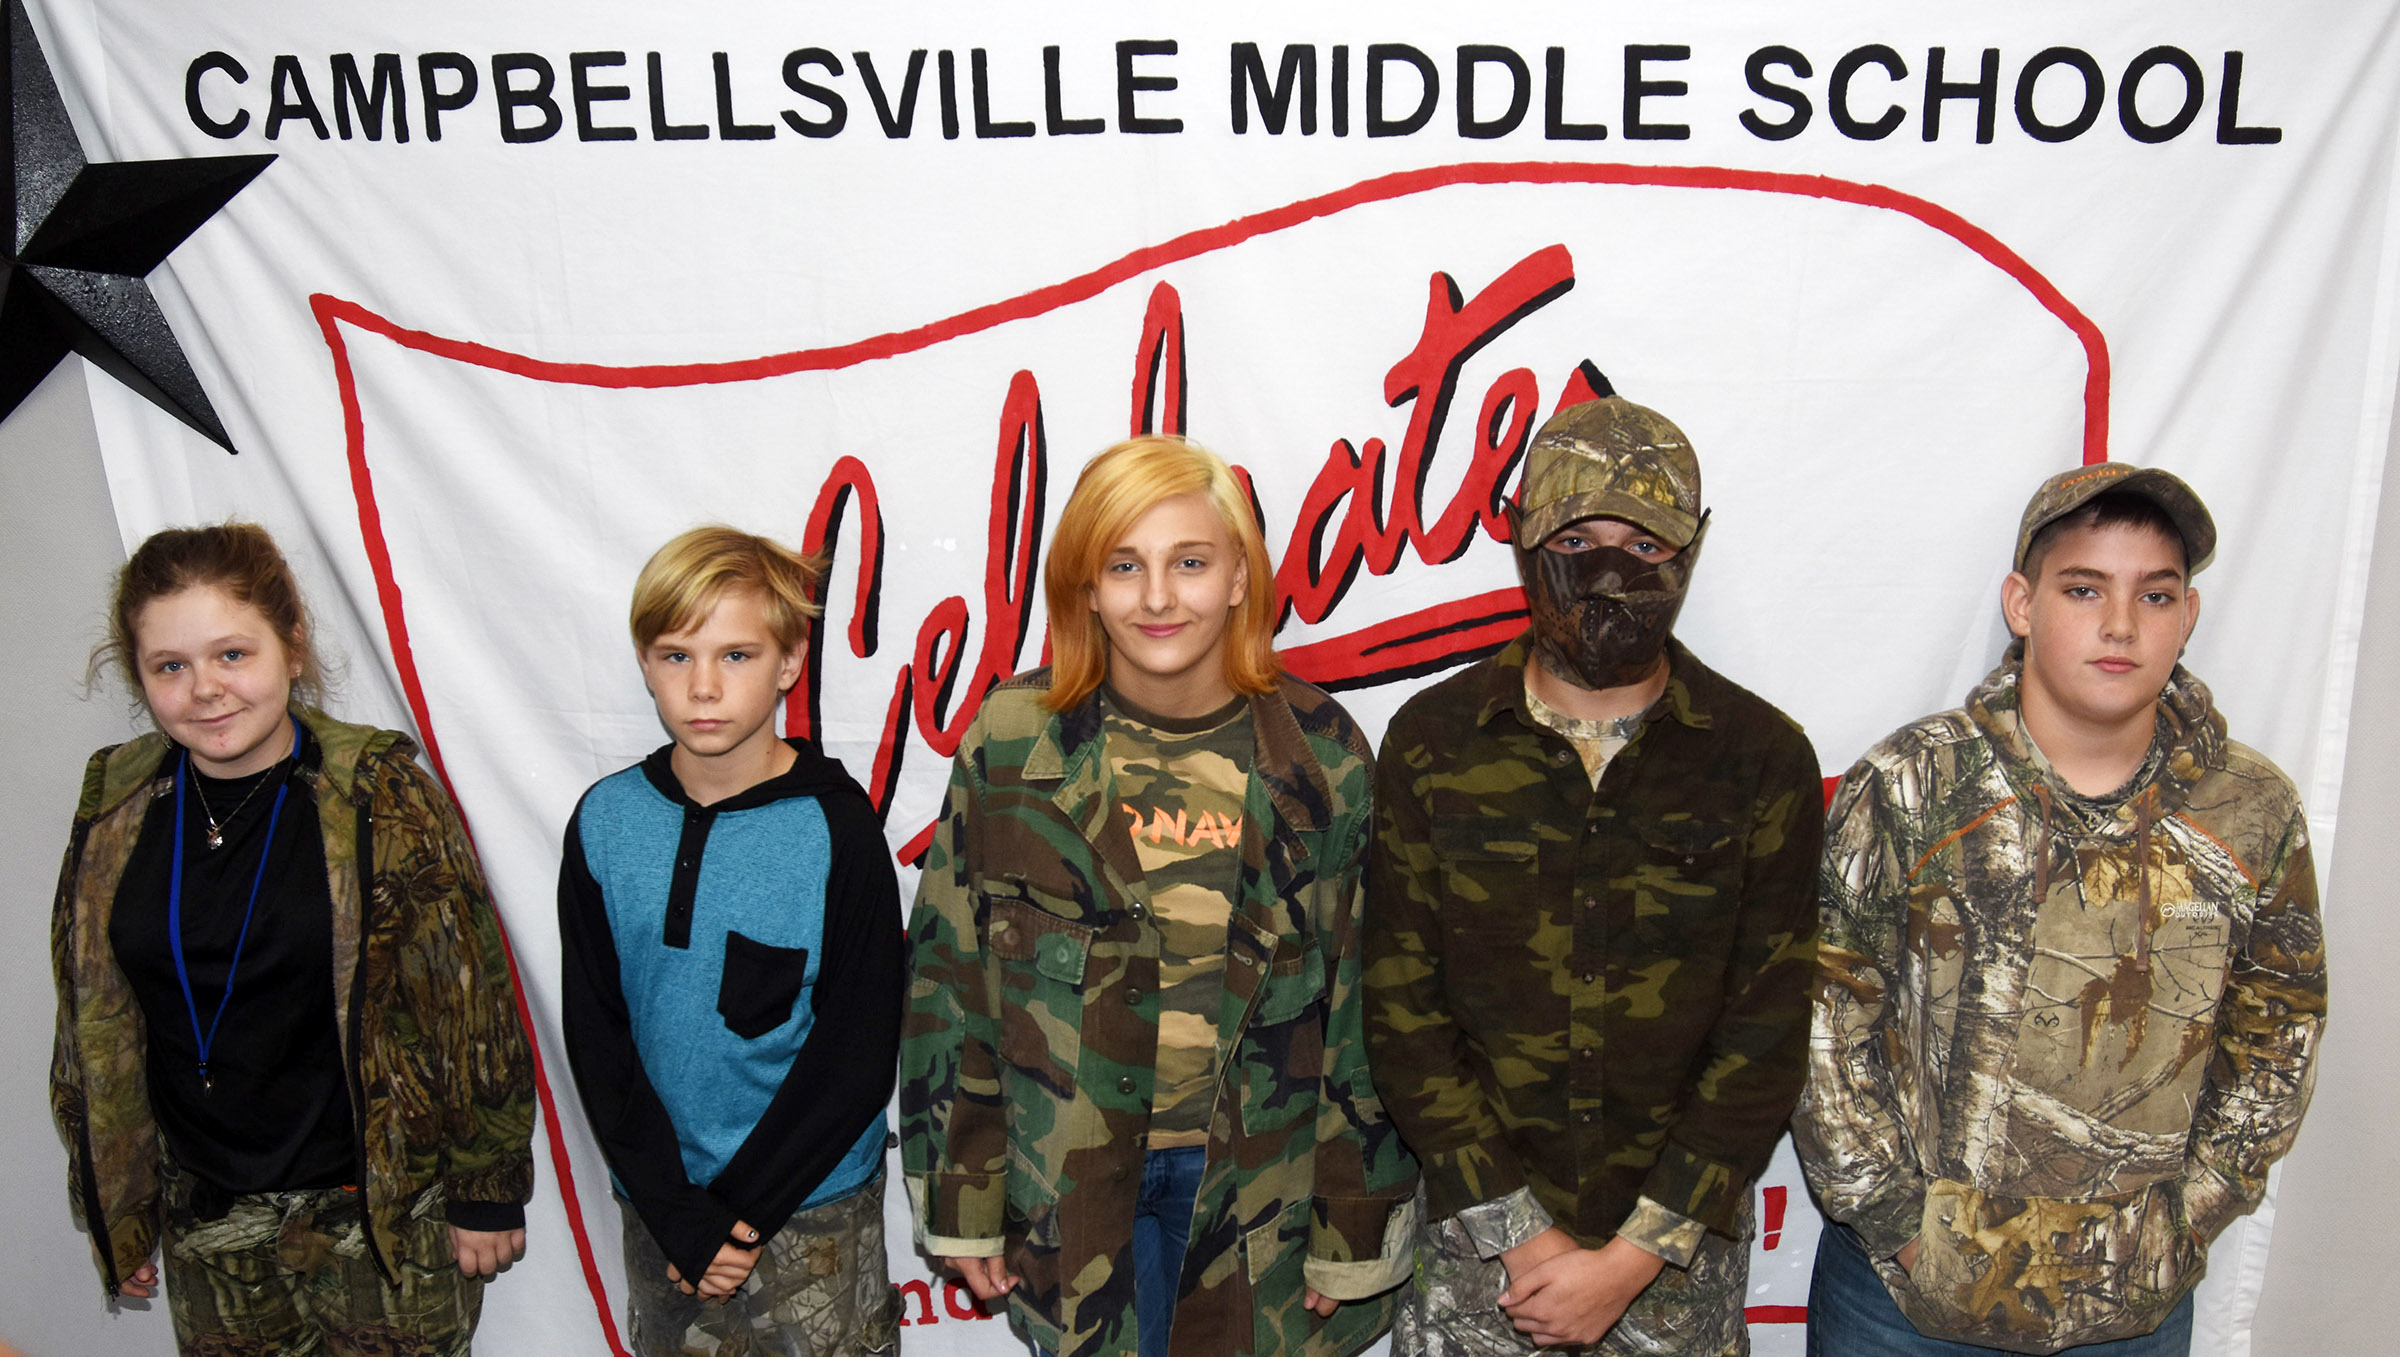 CMS Red Ribbon Week dress-up day winners for Tuesday, Oct. 23, are, from left, seventh-grader Alexis Sharp, sixth-grader Thomas Tungate, eighth-graders Glory Deckard and Tyler Booth and seventh-grader Ashton Davis.